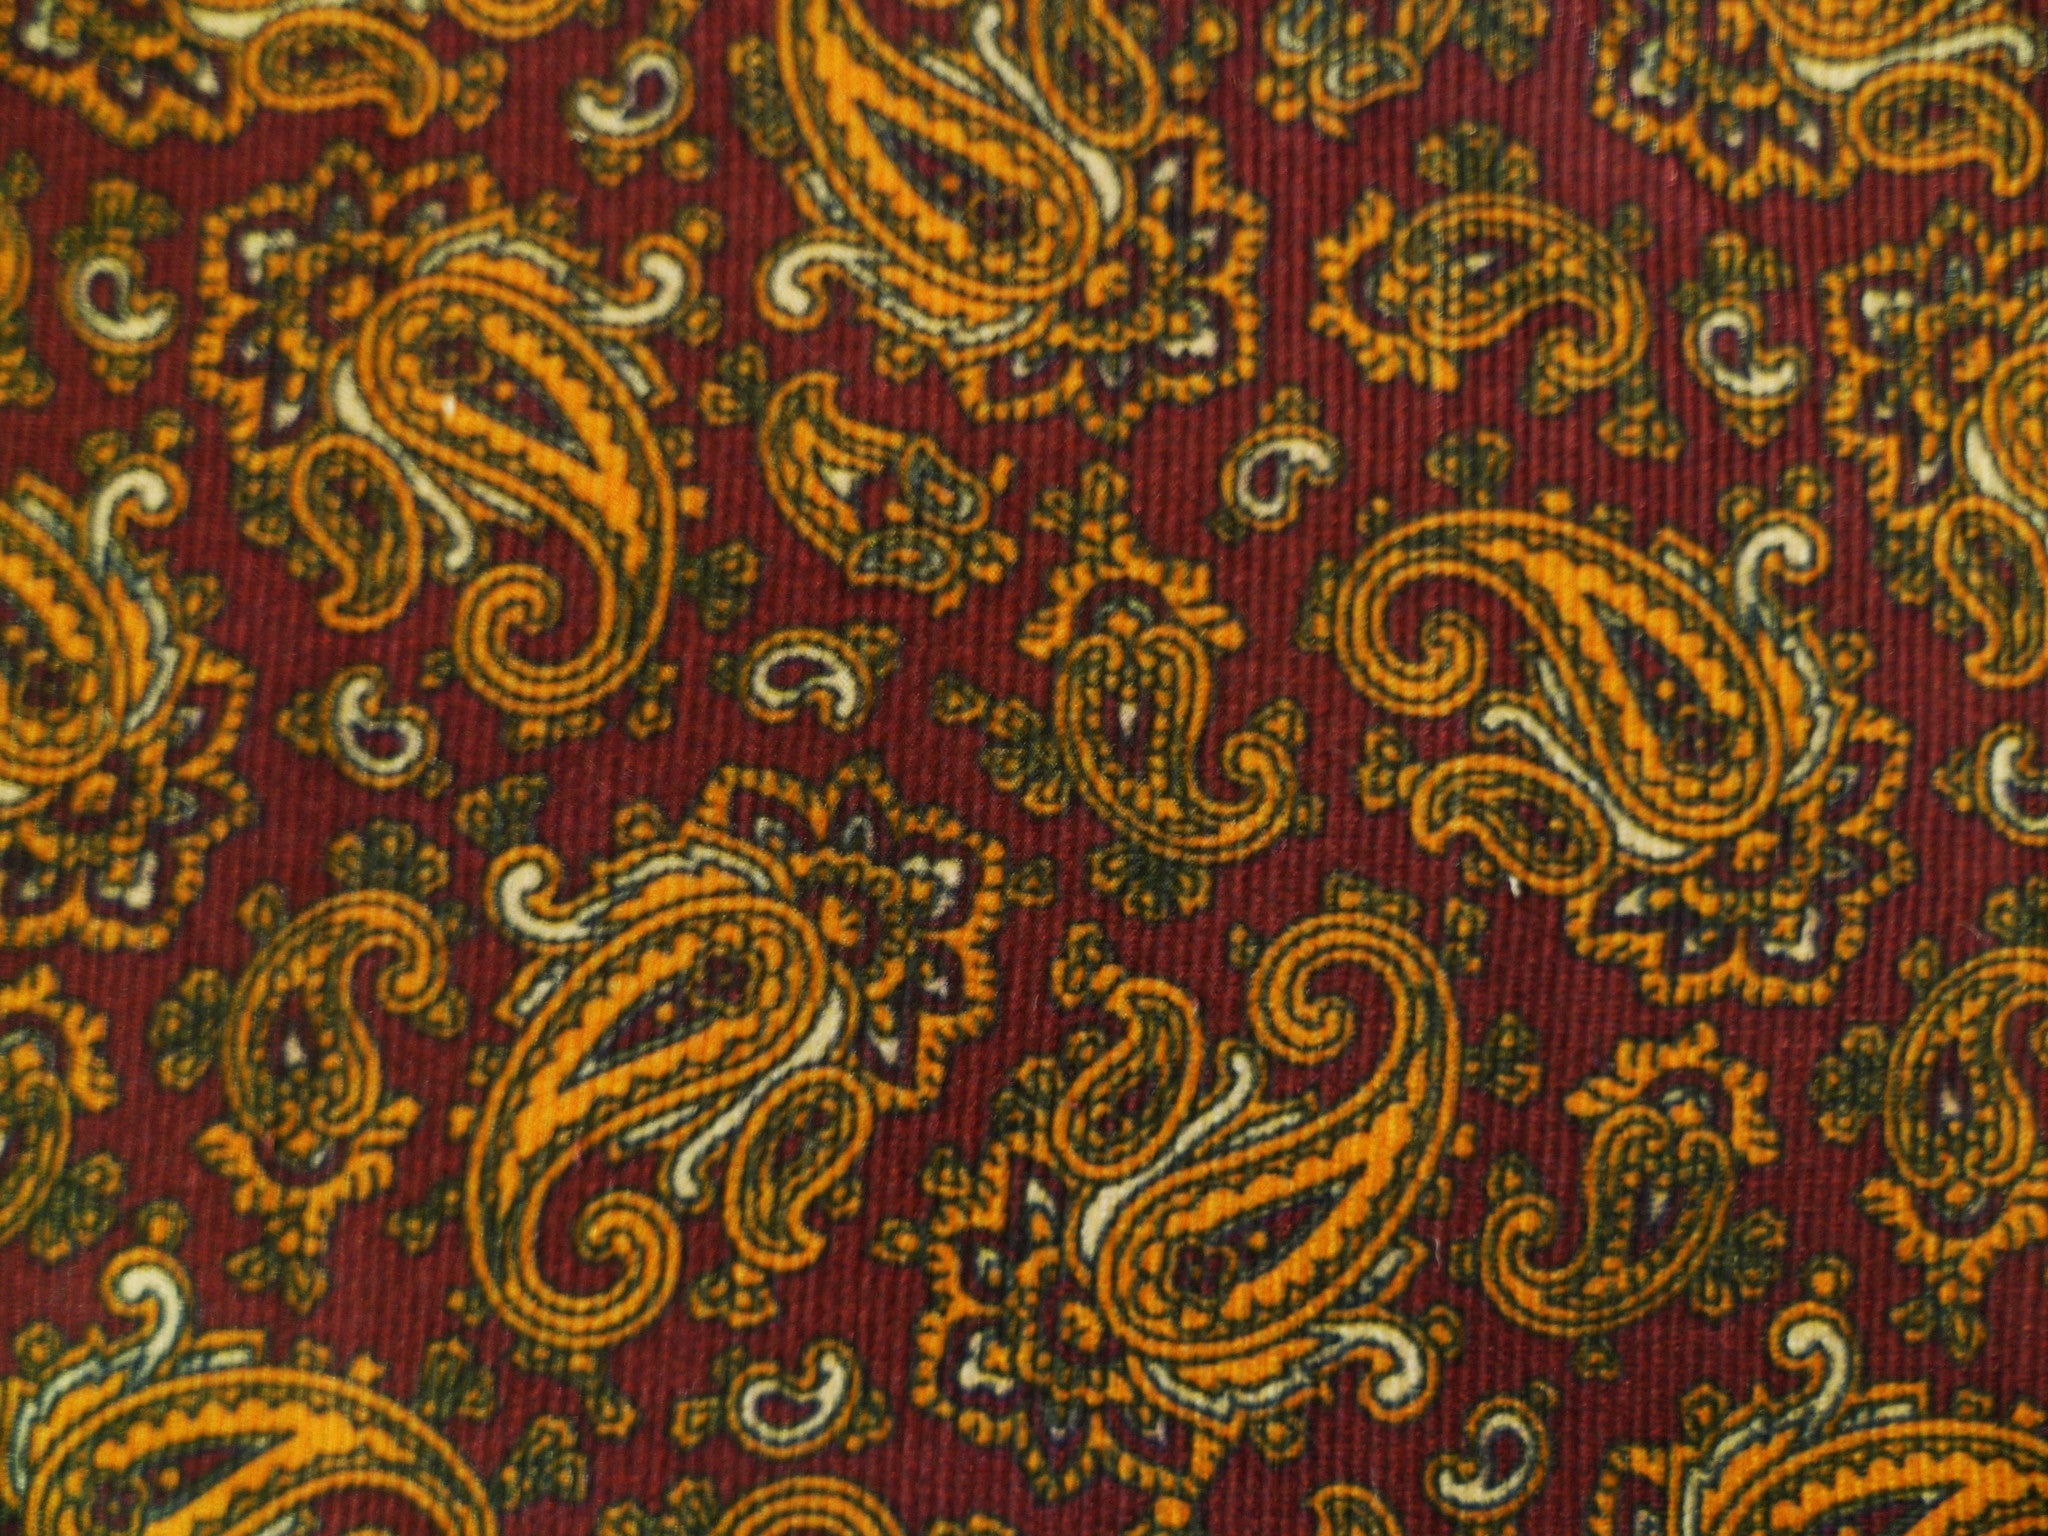 Red-Brown, Orange, Beige and Black Paisley Patterned Cotton